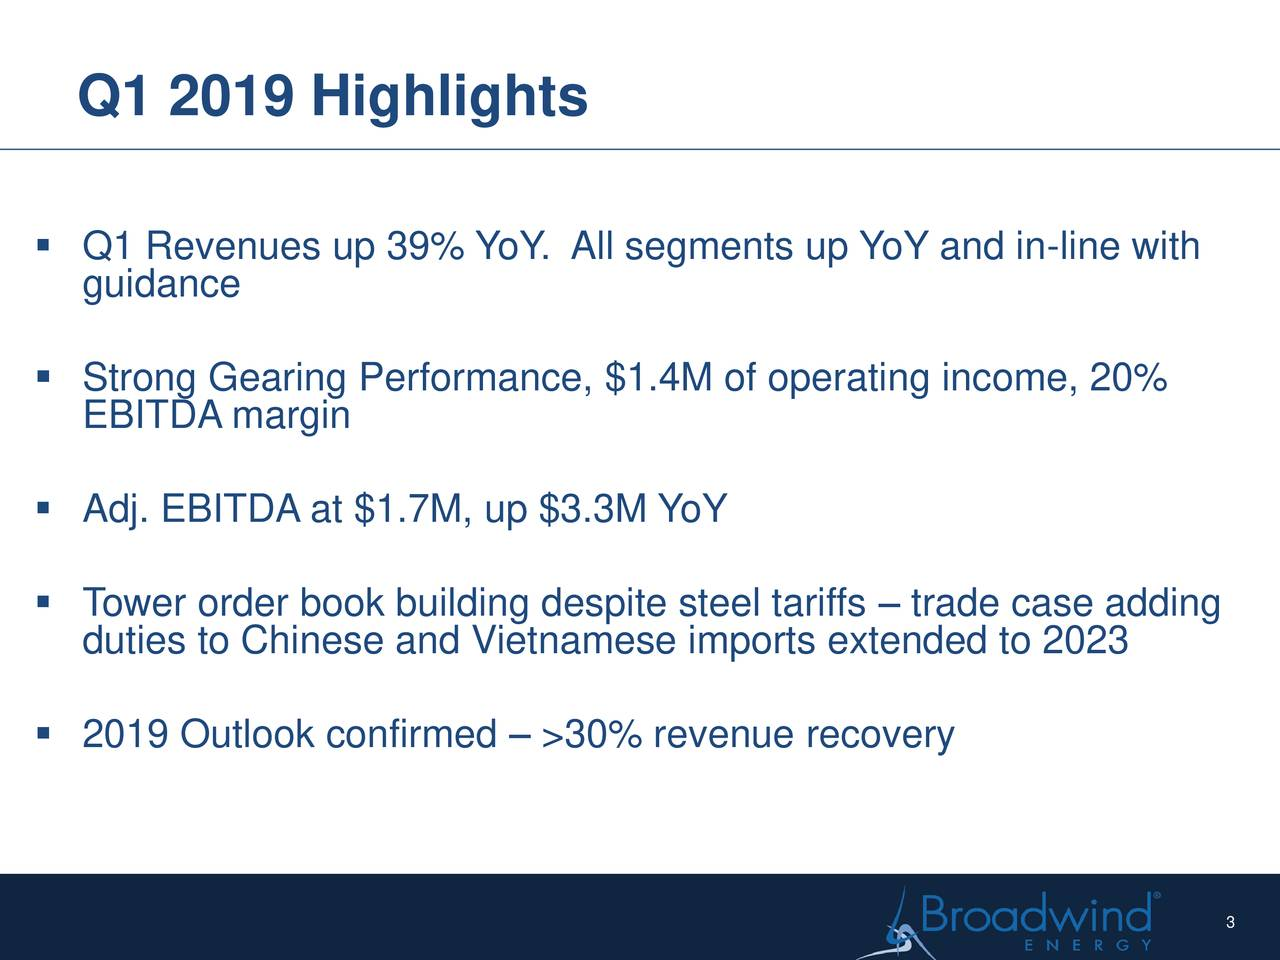  Q1 Revenues up 39% YoY. All segments up YoY and in-line with guidance  Strong Gearing Performance, $1.4M of operating income, 20% EBITDA margin  Adj. EBITDA at $1.7M, up $3.3M YoY  Tower order book building despite steel tariffs – trade case adding duties to Chinese and Vietnamese imports extended to 2023  2019 Outlook confirmed – >30% revenue recovery 3